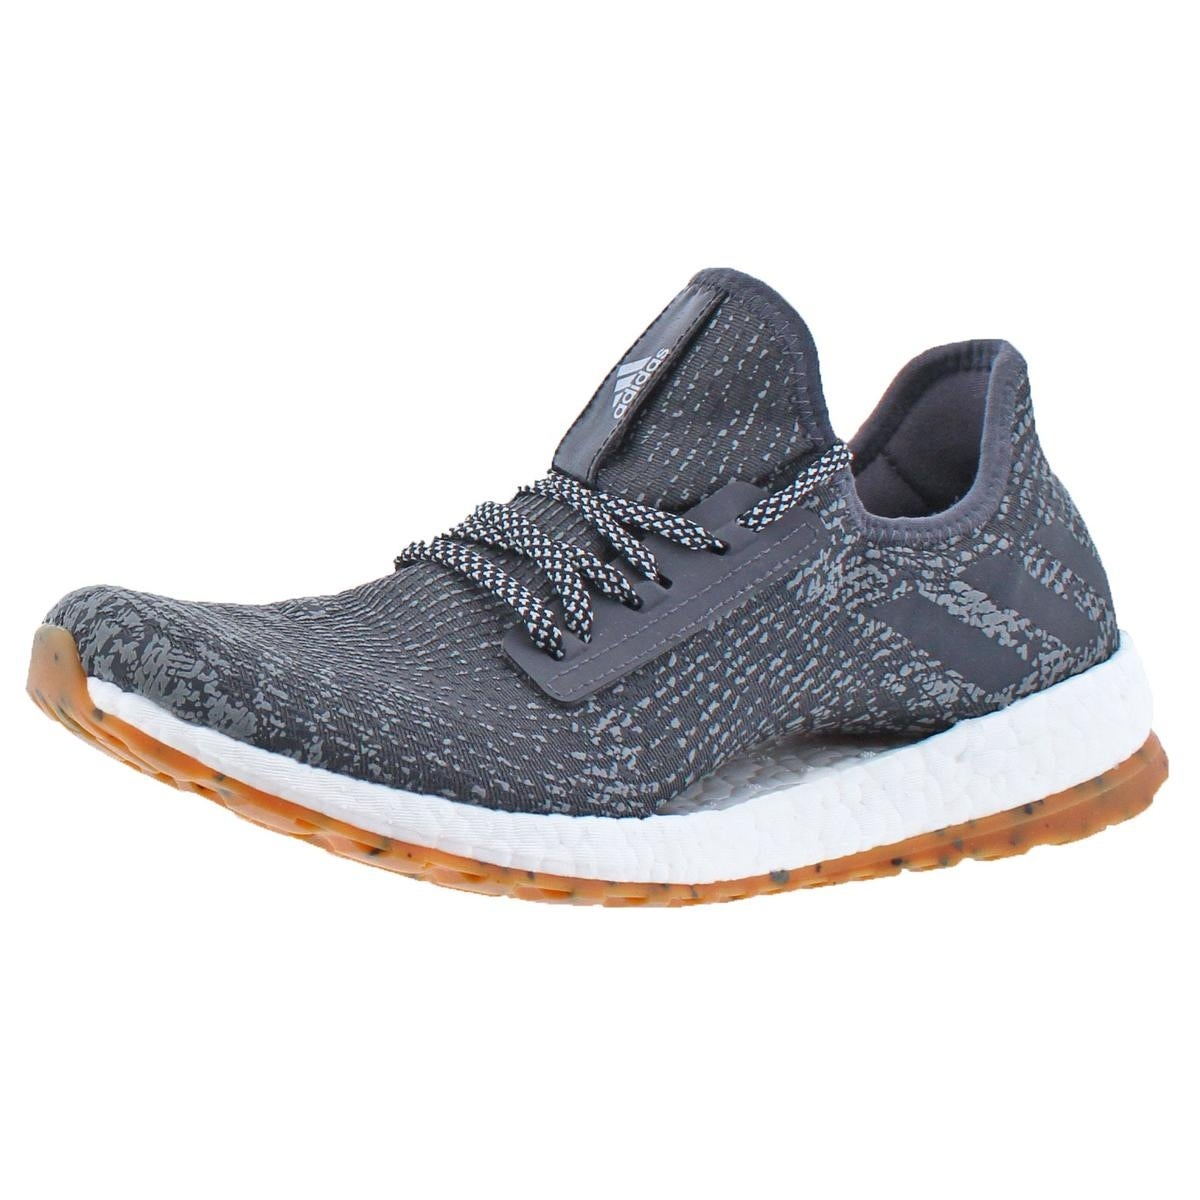 6291191a0b572 Shop Adidas Womens PureBOOST X ATR Running Shoes Lace-Up Athletic - 11  medium (d) - Free Shipping Today - Overstock - 22532471